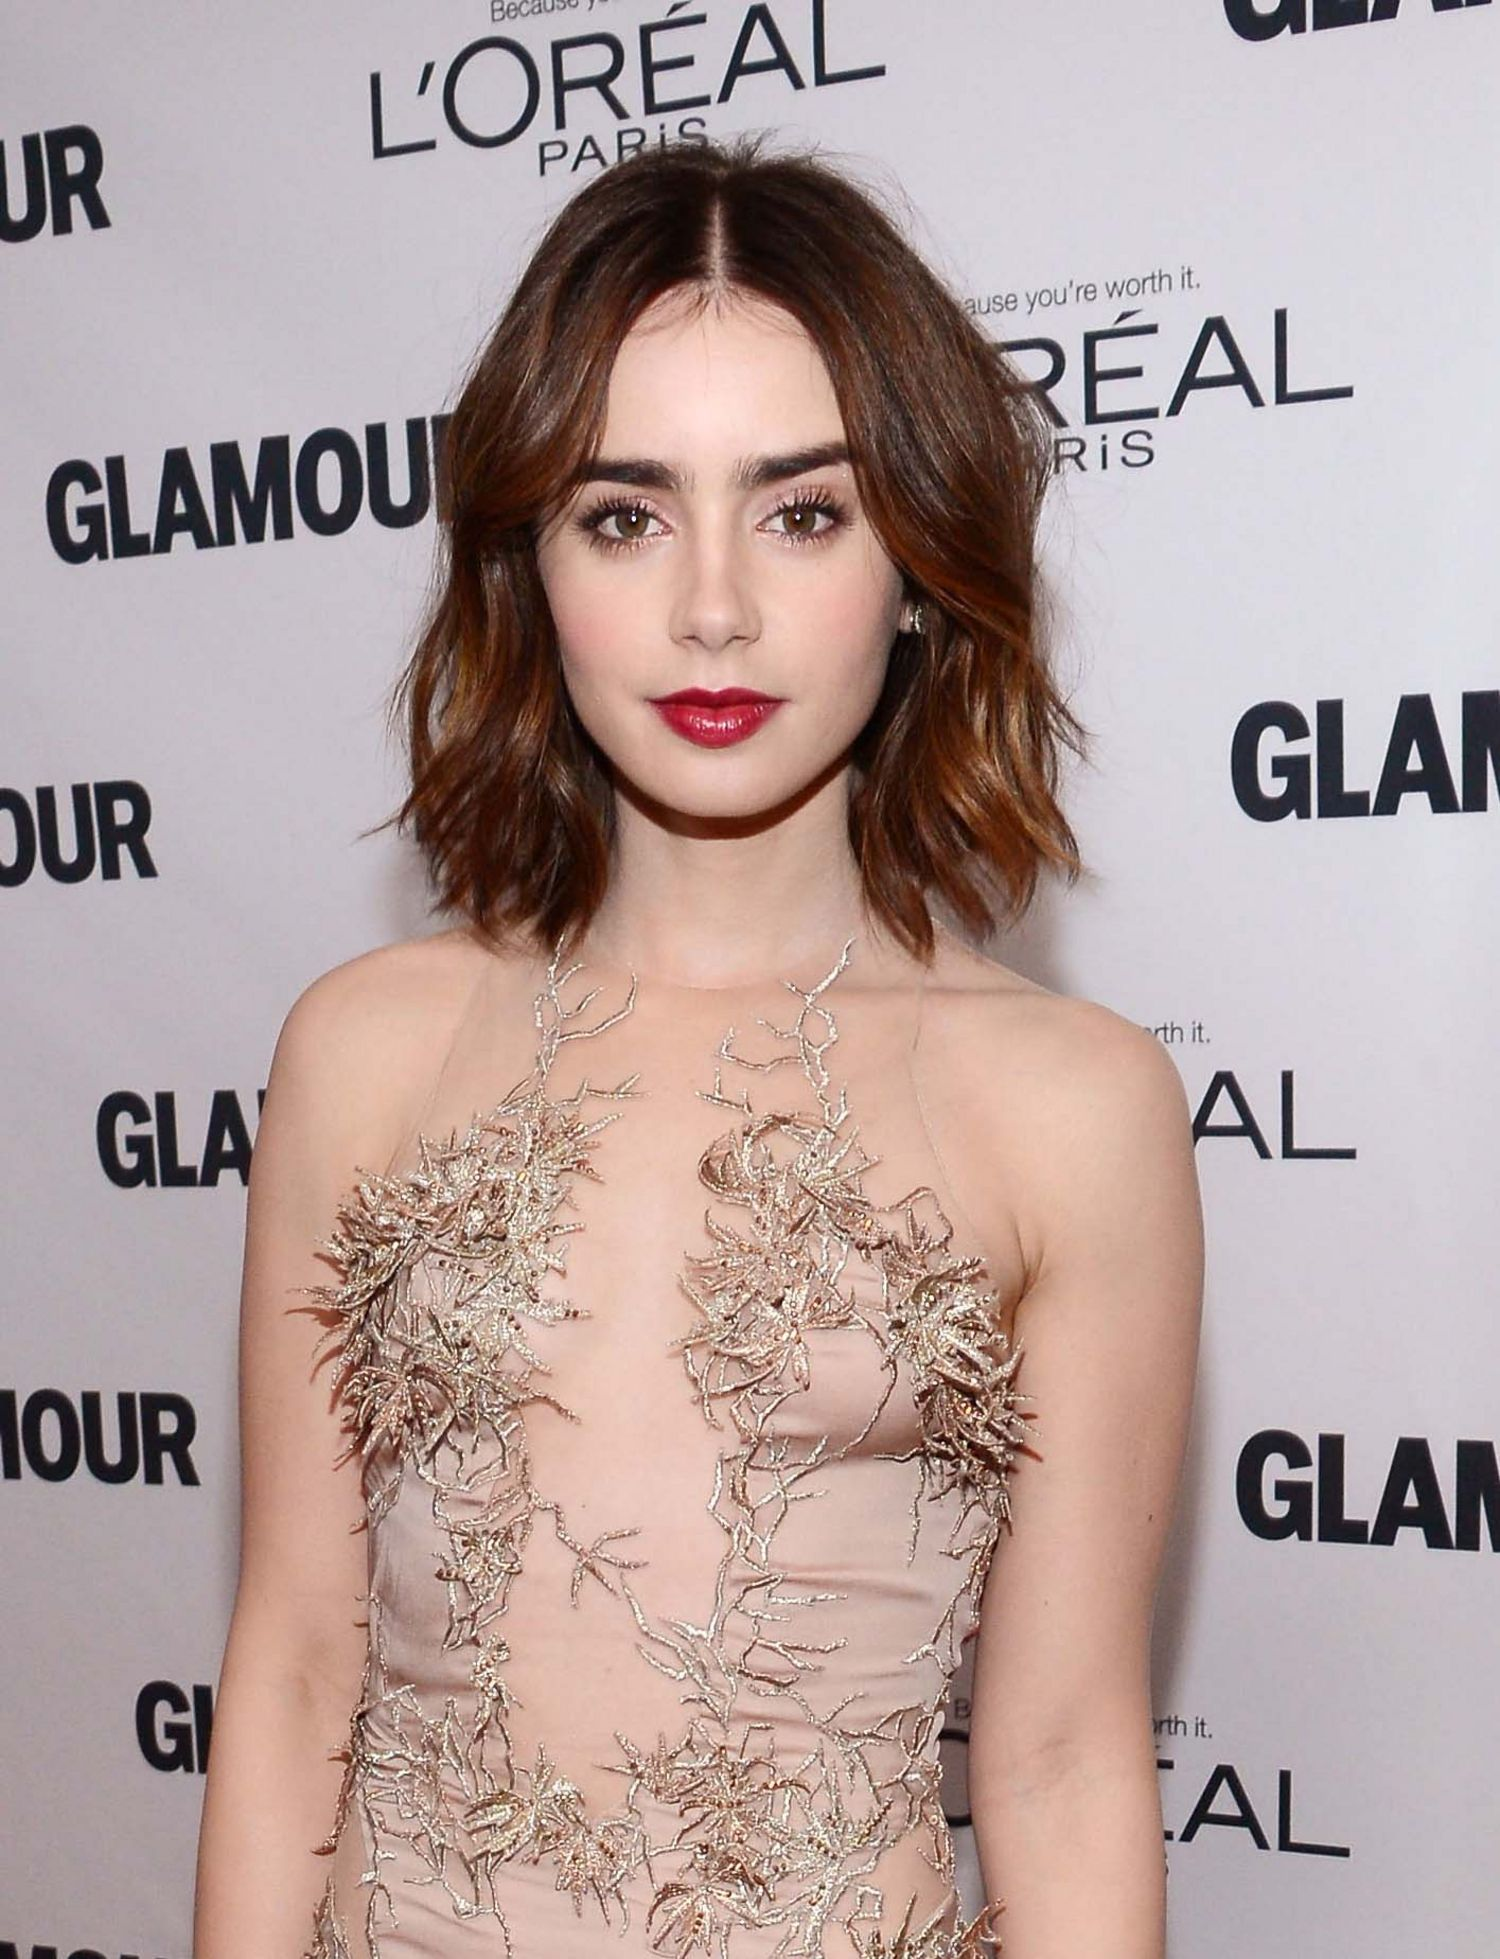 lily-collins-dark-lipstick-glamour-woty-awards-main